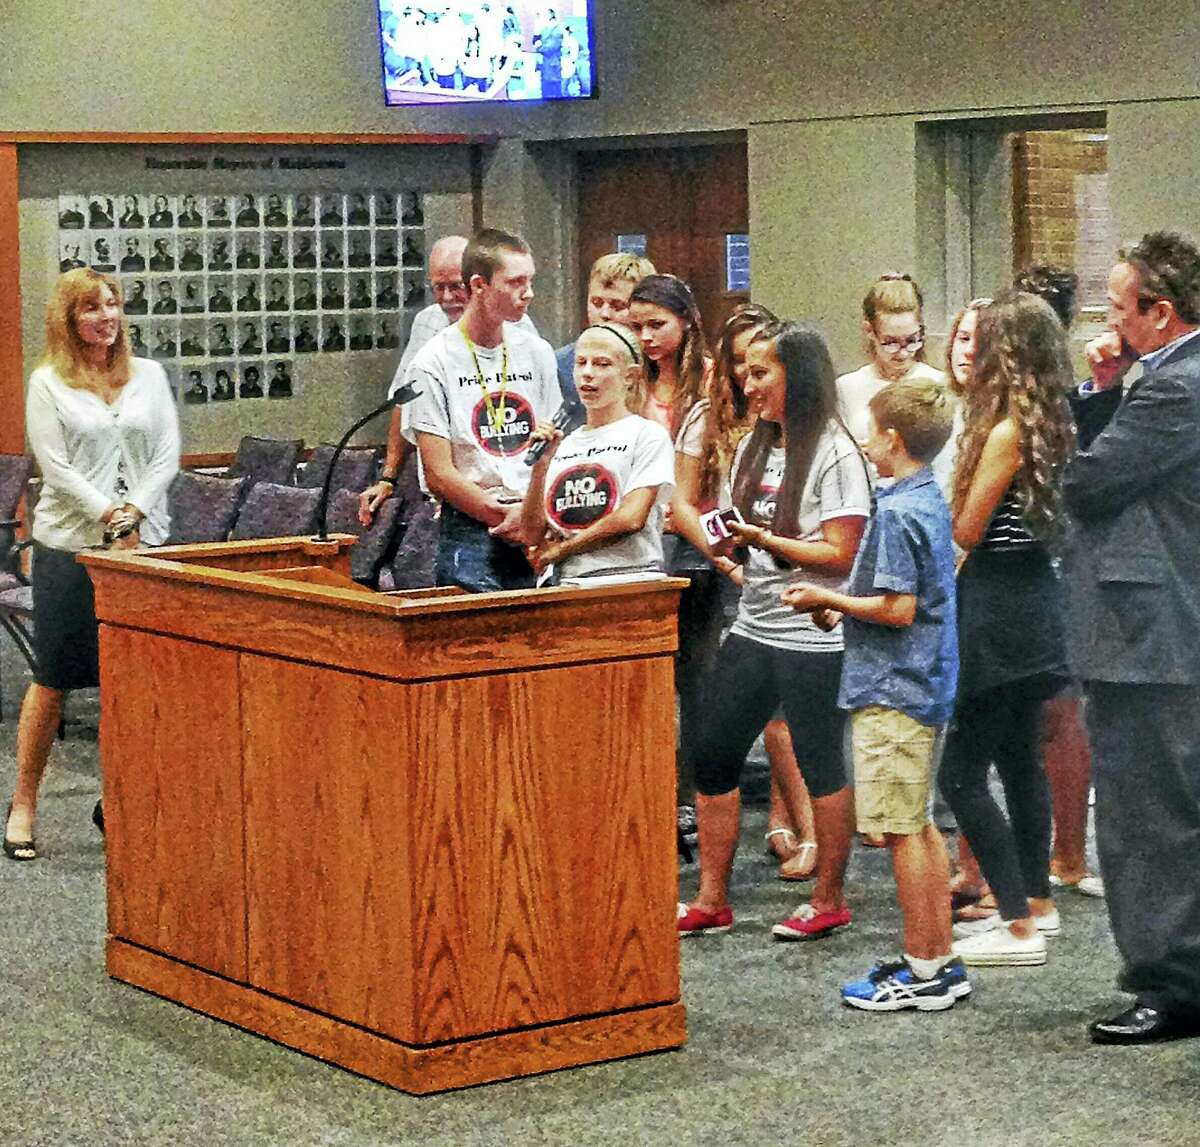 Ram Pride Patrol alumnus celebrated a glow stick ceremony with the city's board of education Tuesday at City Hall. The students were joined by teacher John Geary and other coordinators of the anti-bullying program at Woodrow Wilson Middle School to make a brief presentation.